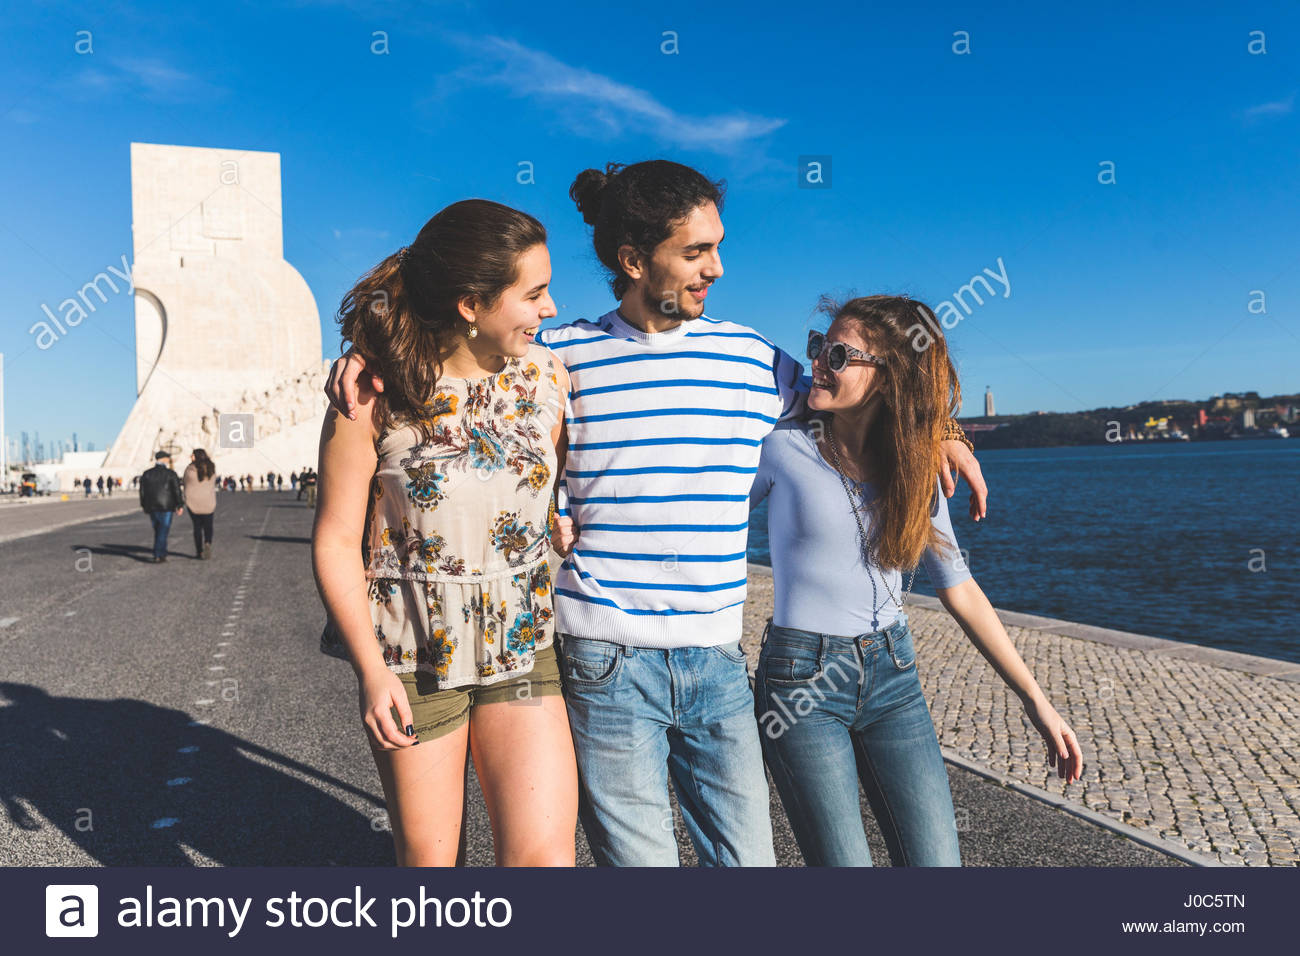 Three friends, walking by sea, Monument to the Discoveries in background, Lisbon, Portugal - Stock Image